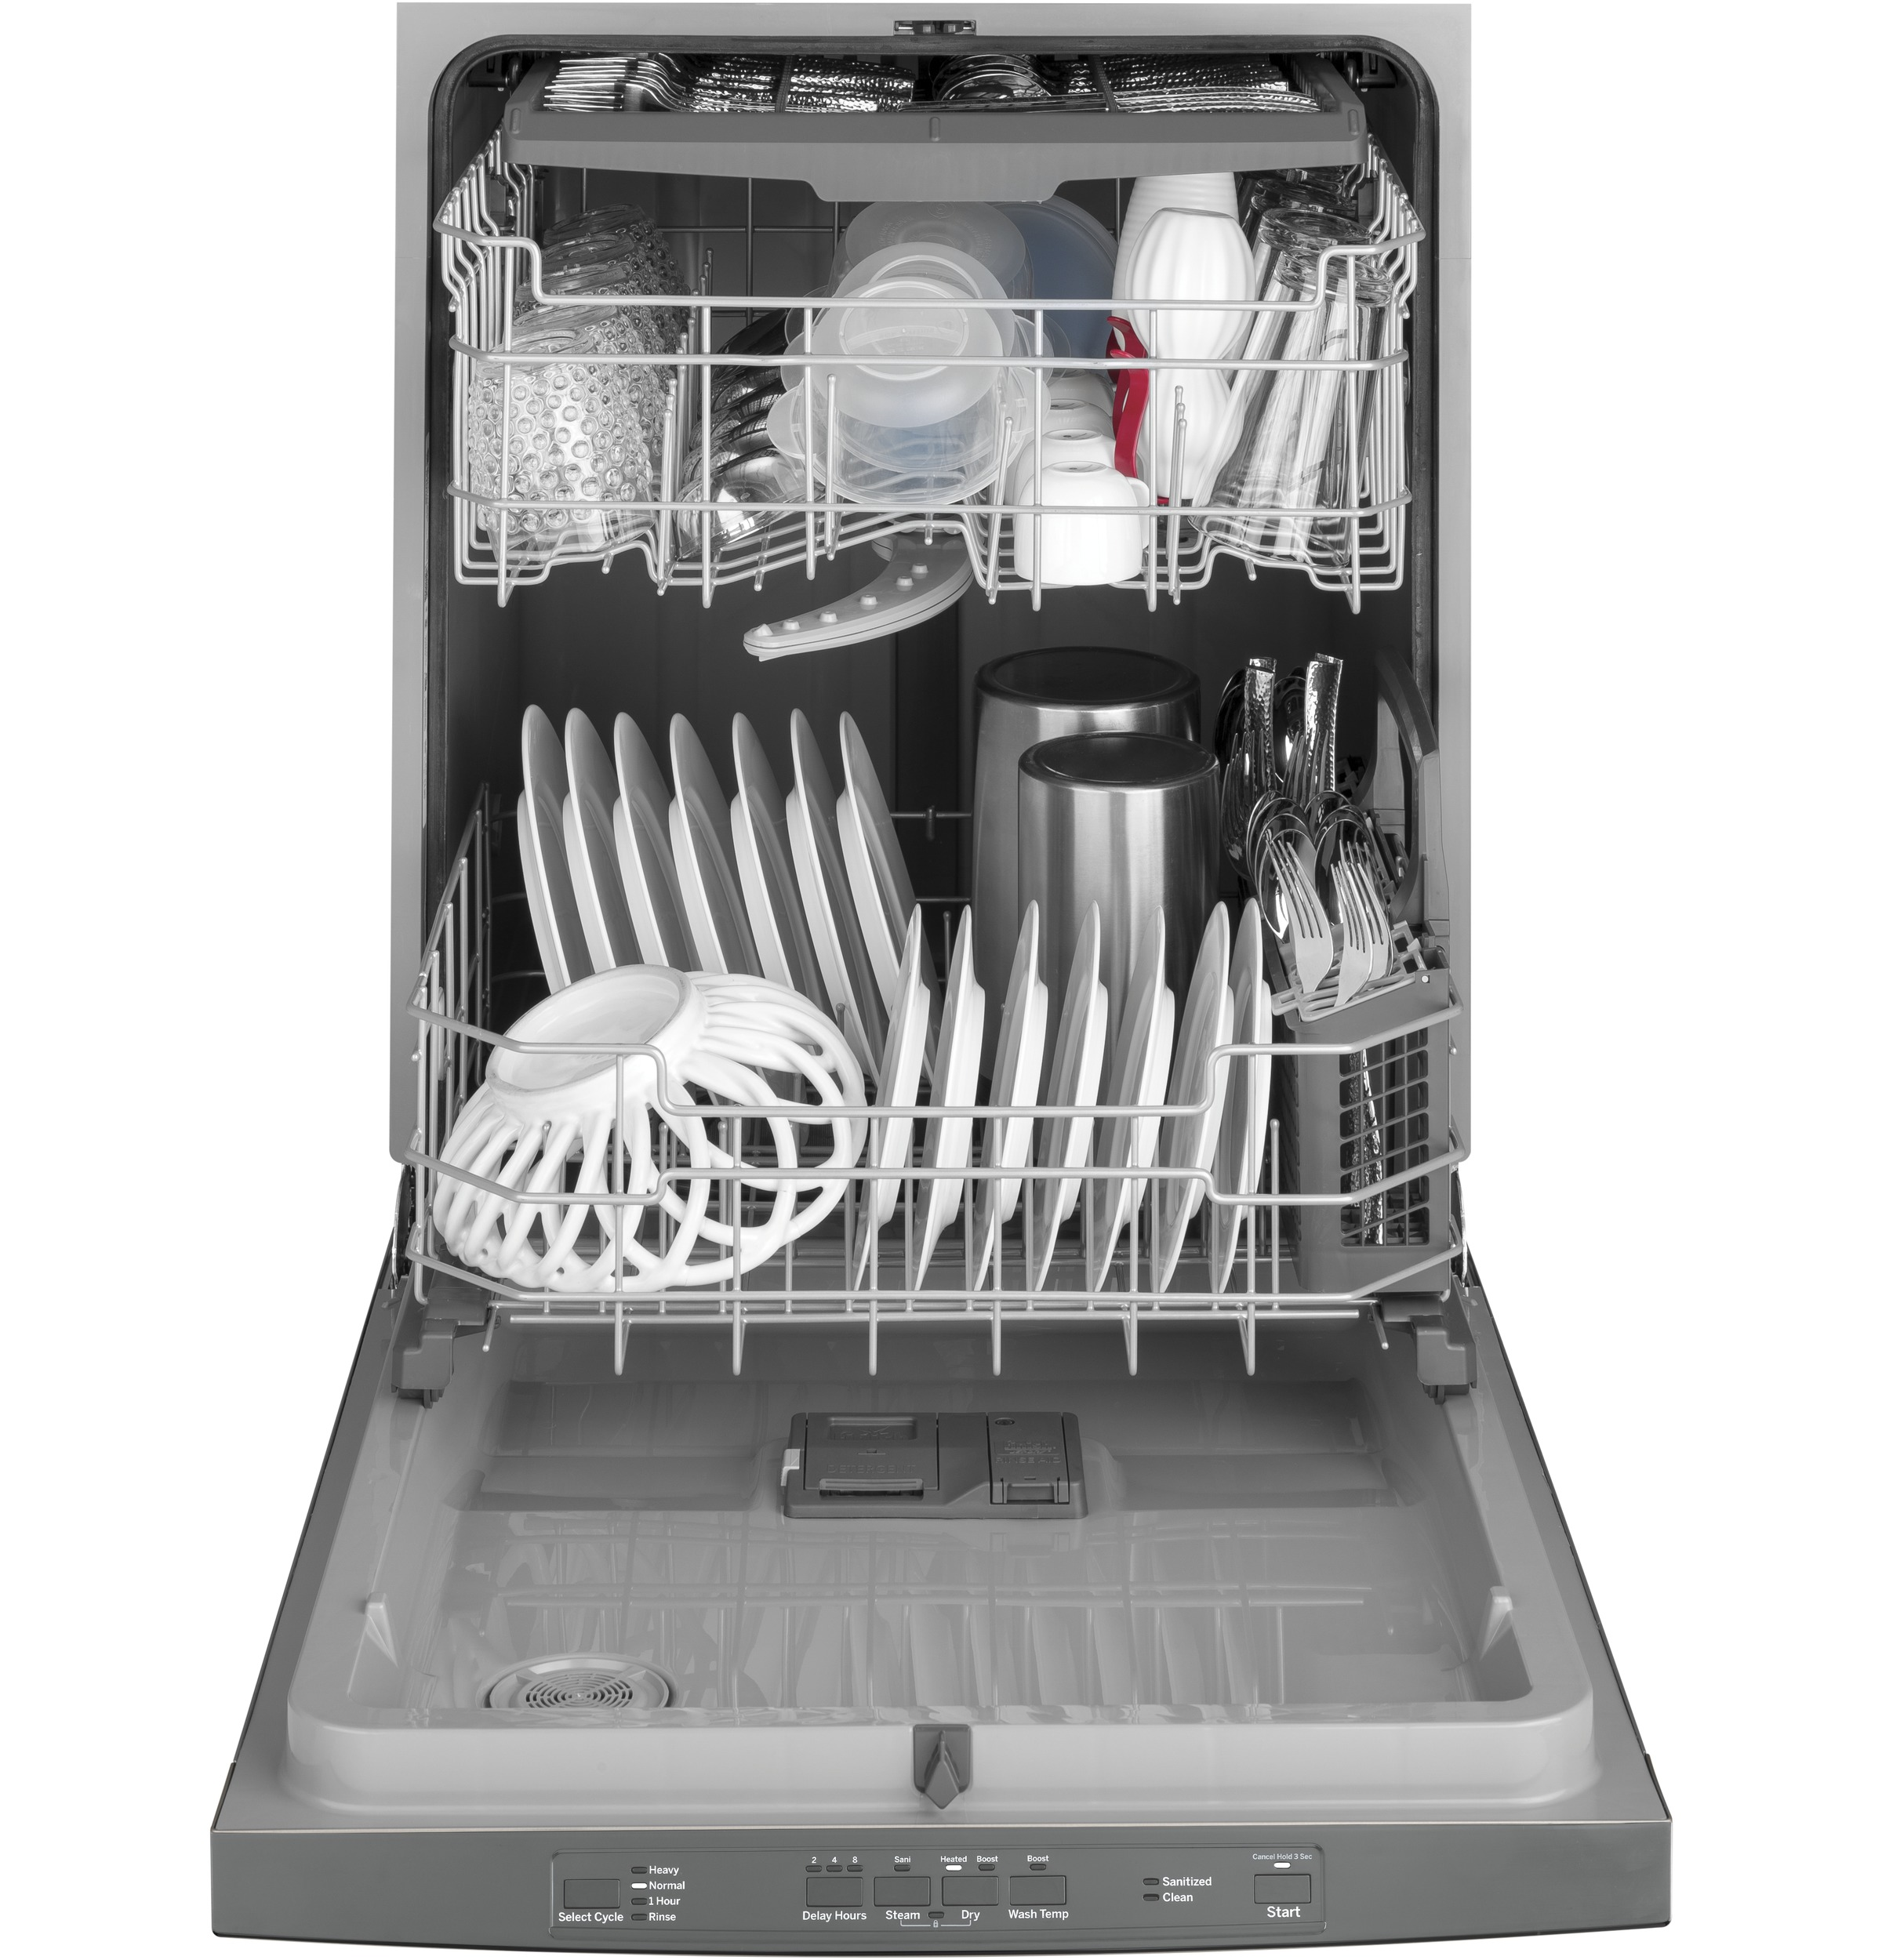 Model: GDT630PSMSS | GE GE® Top Control with Plastic Interior Dishwasher with Sanitize Cycle & Dry Boost